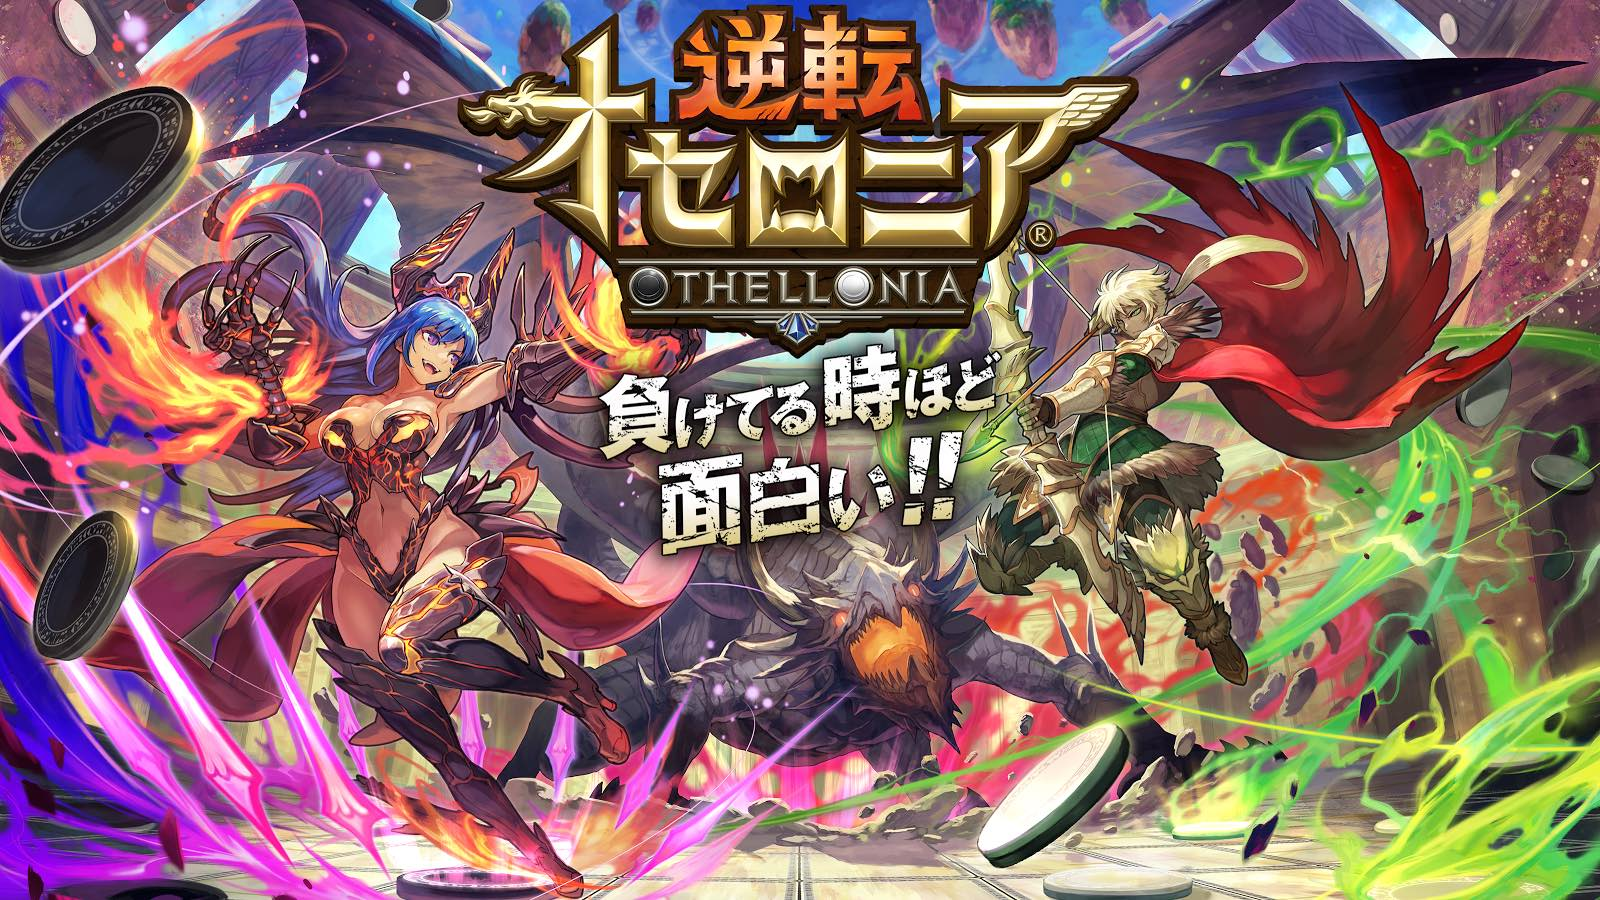 Big In Japan: An Old Game Makes A Modern Return In Gyakuten Othellonia